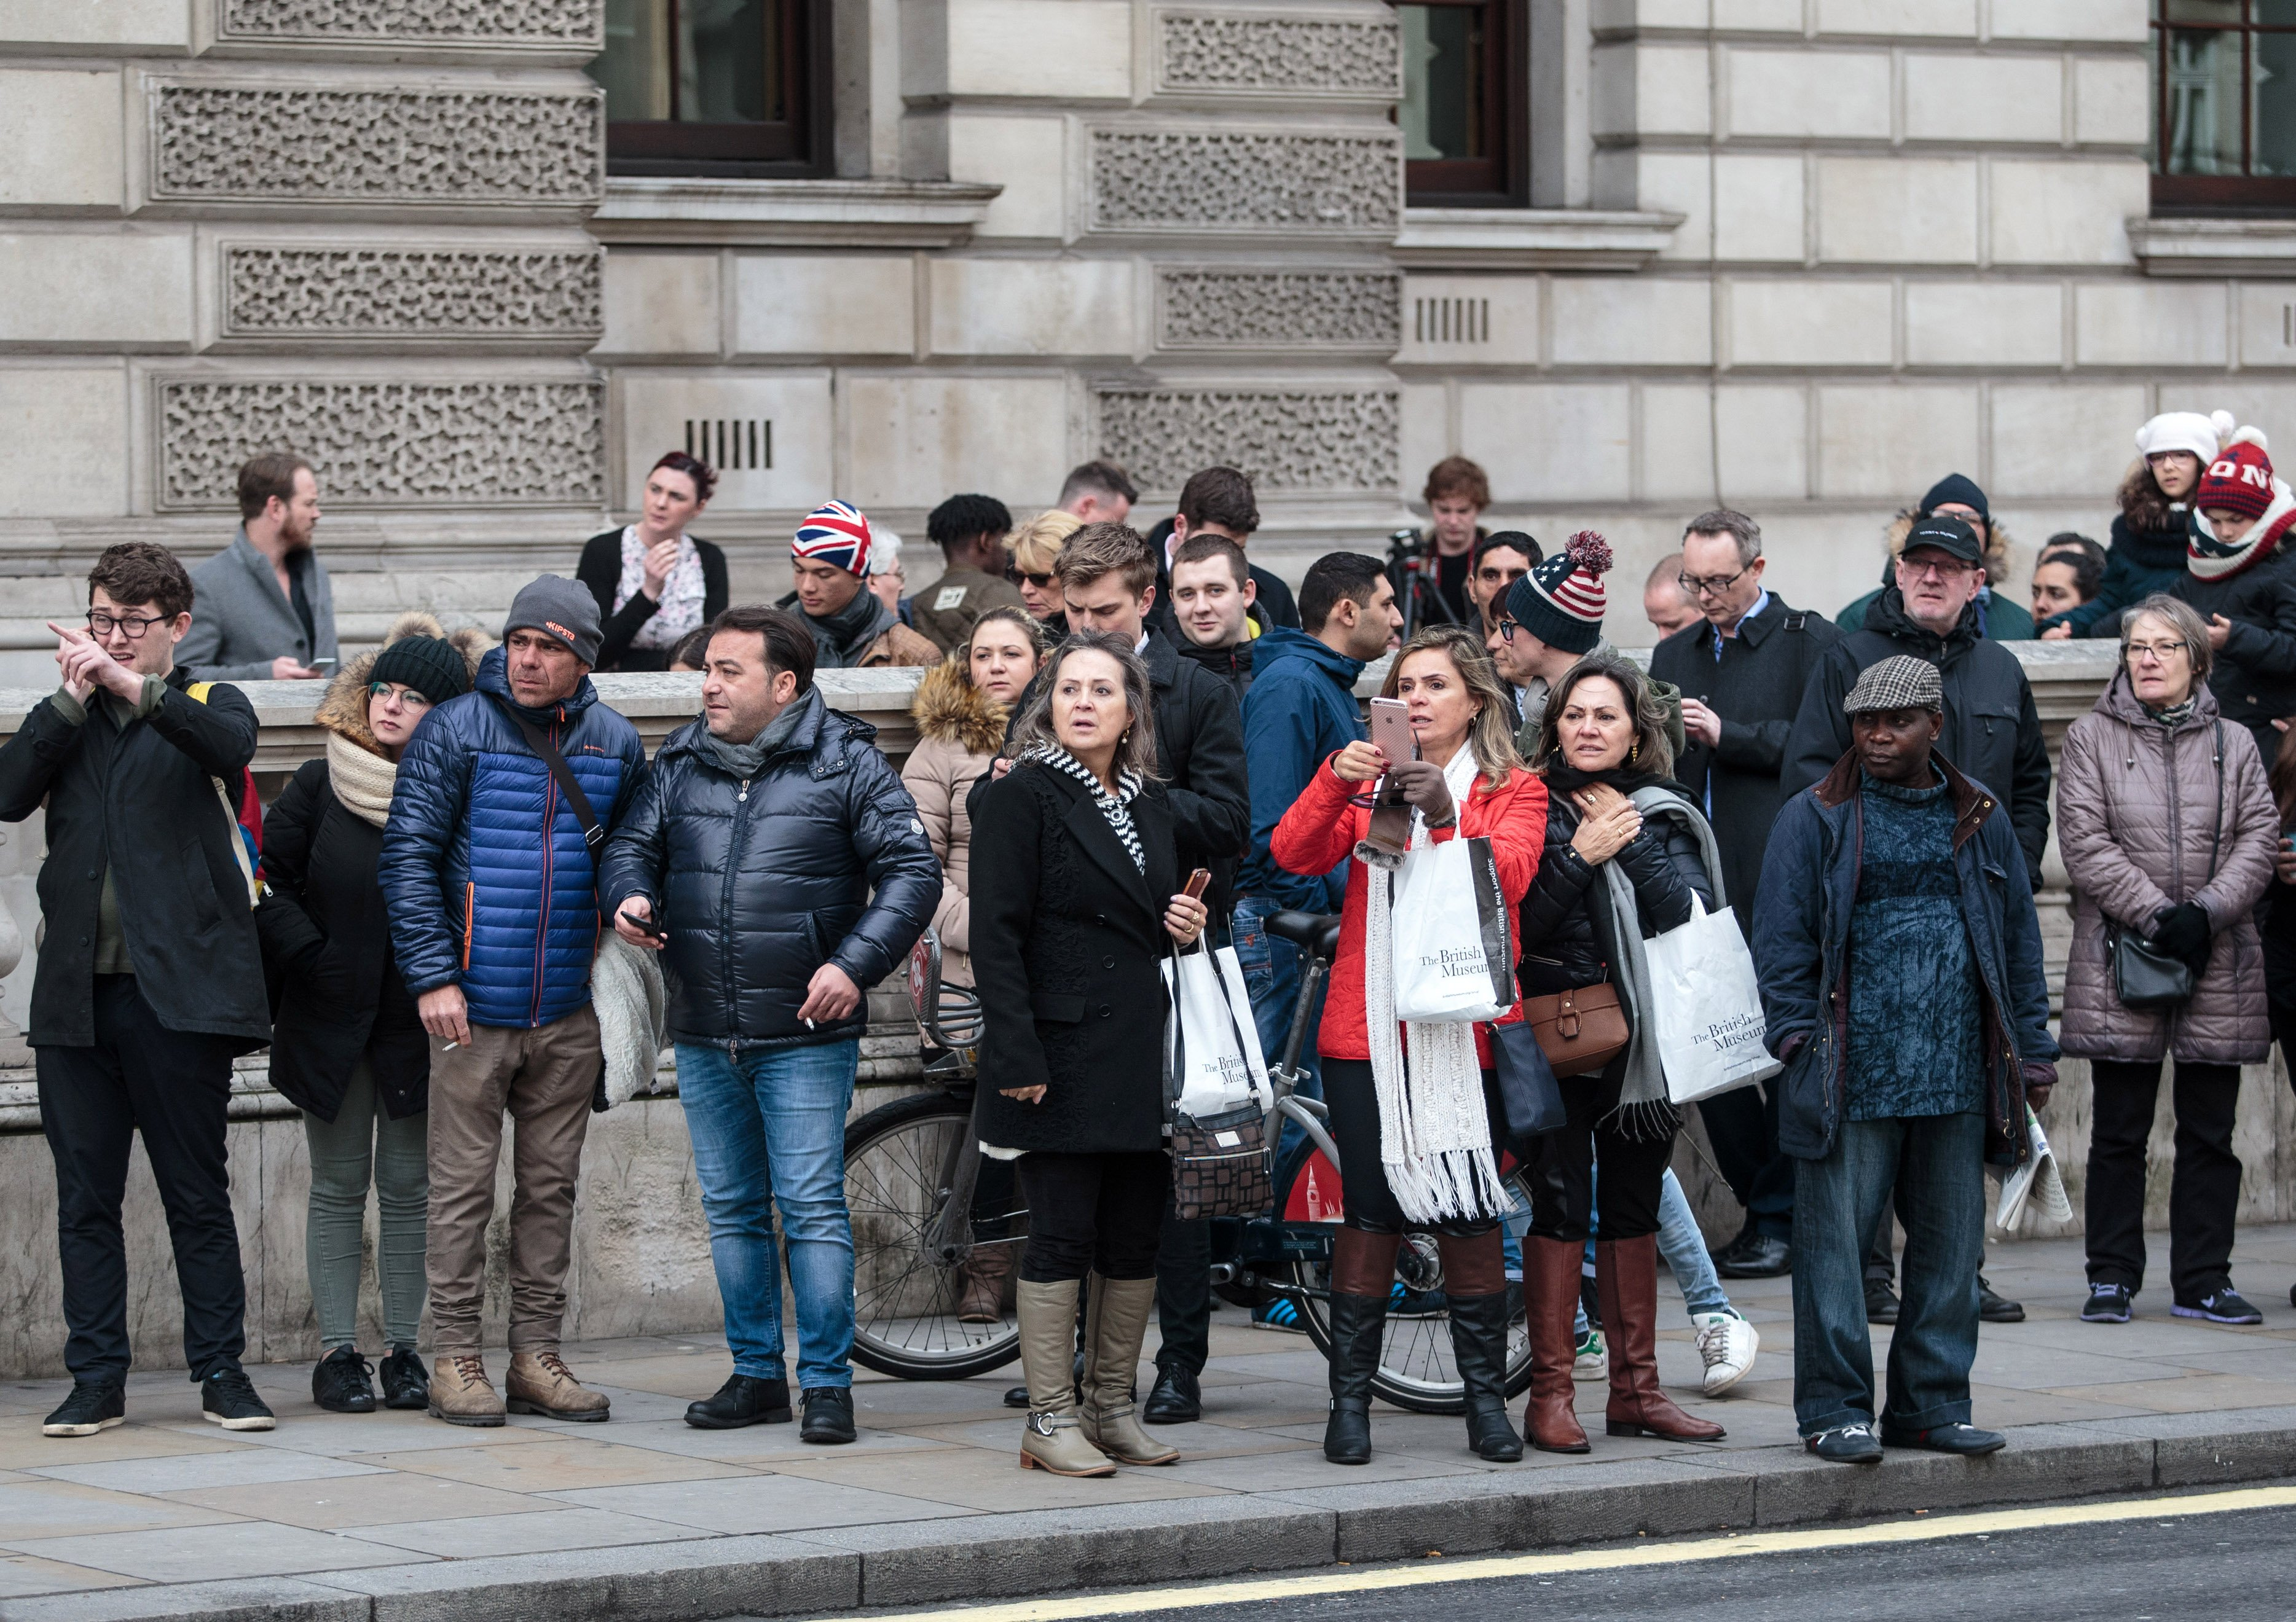 Members of the public look on as roads are closed off by Police around Westminster Bridge and the Houses of Parliament on March 22, 2017.